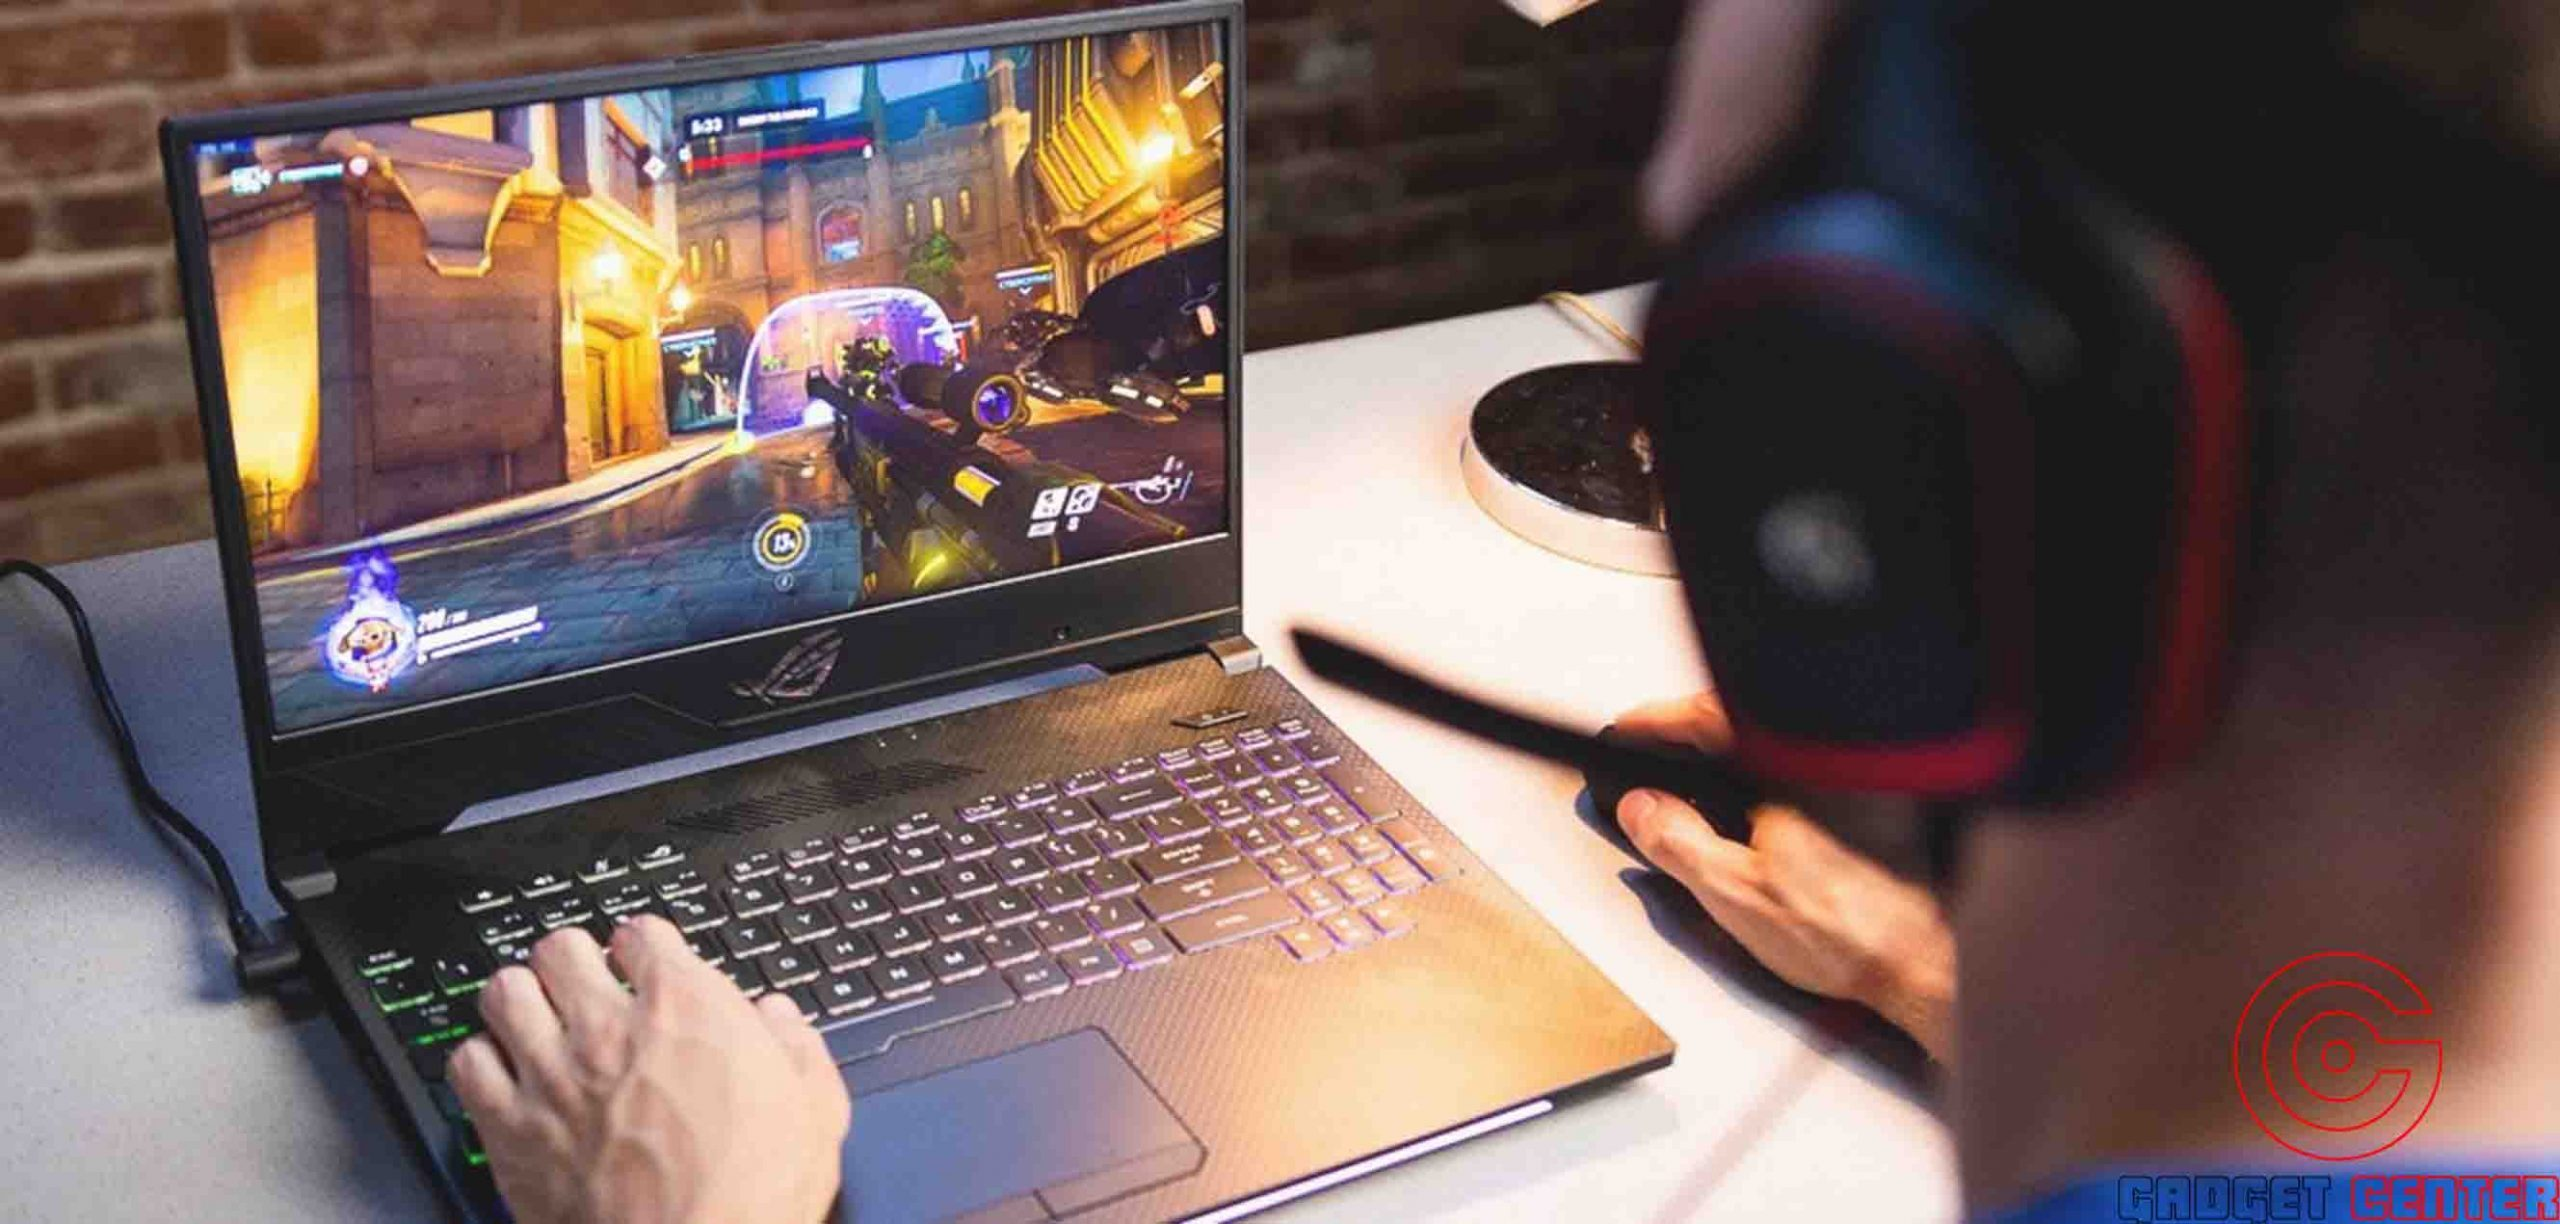 Best Laptop For League of Legends Under 500